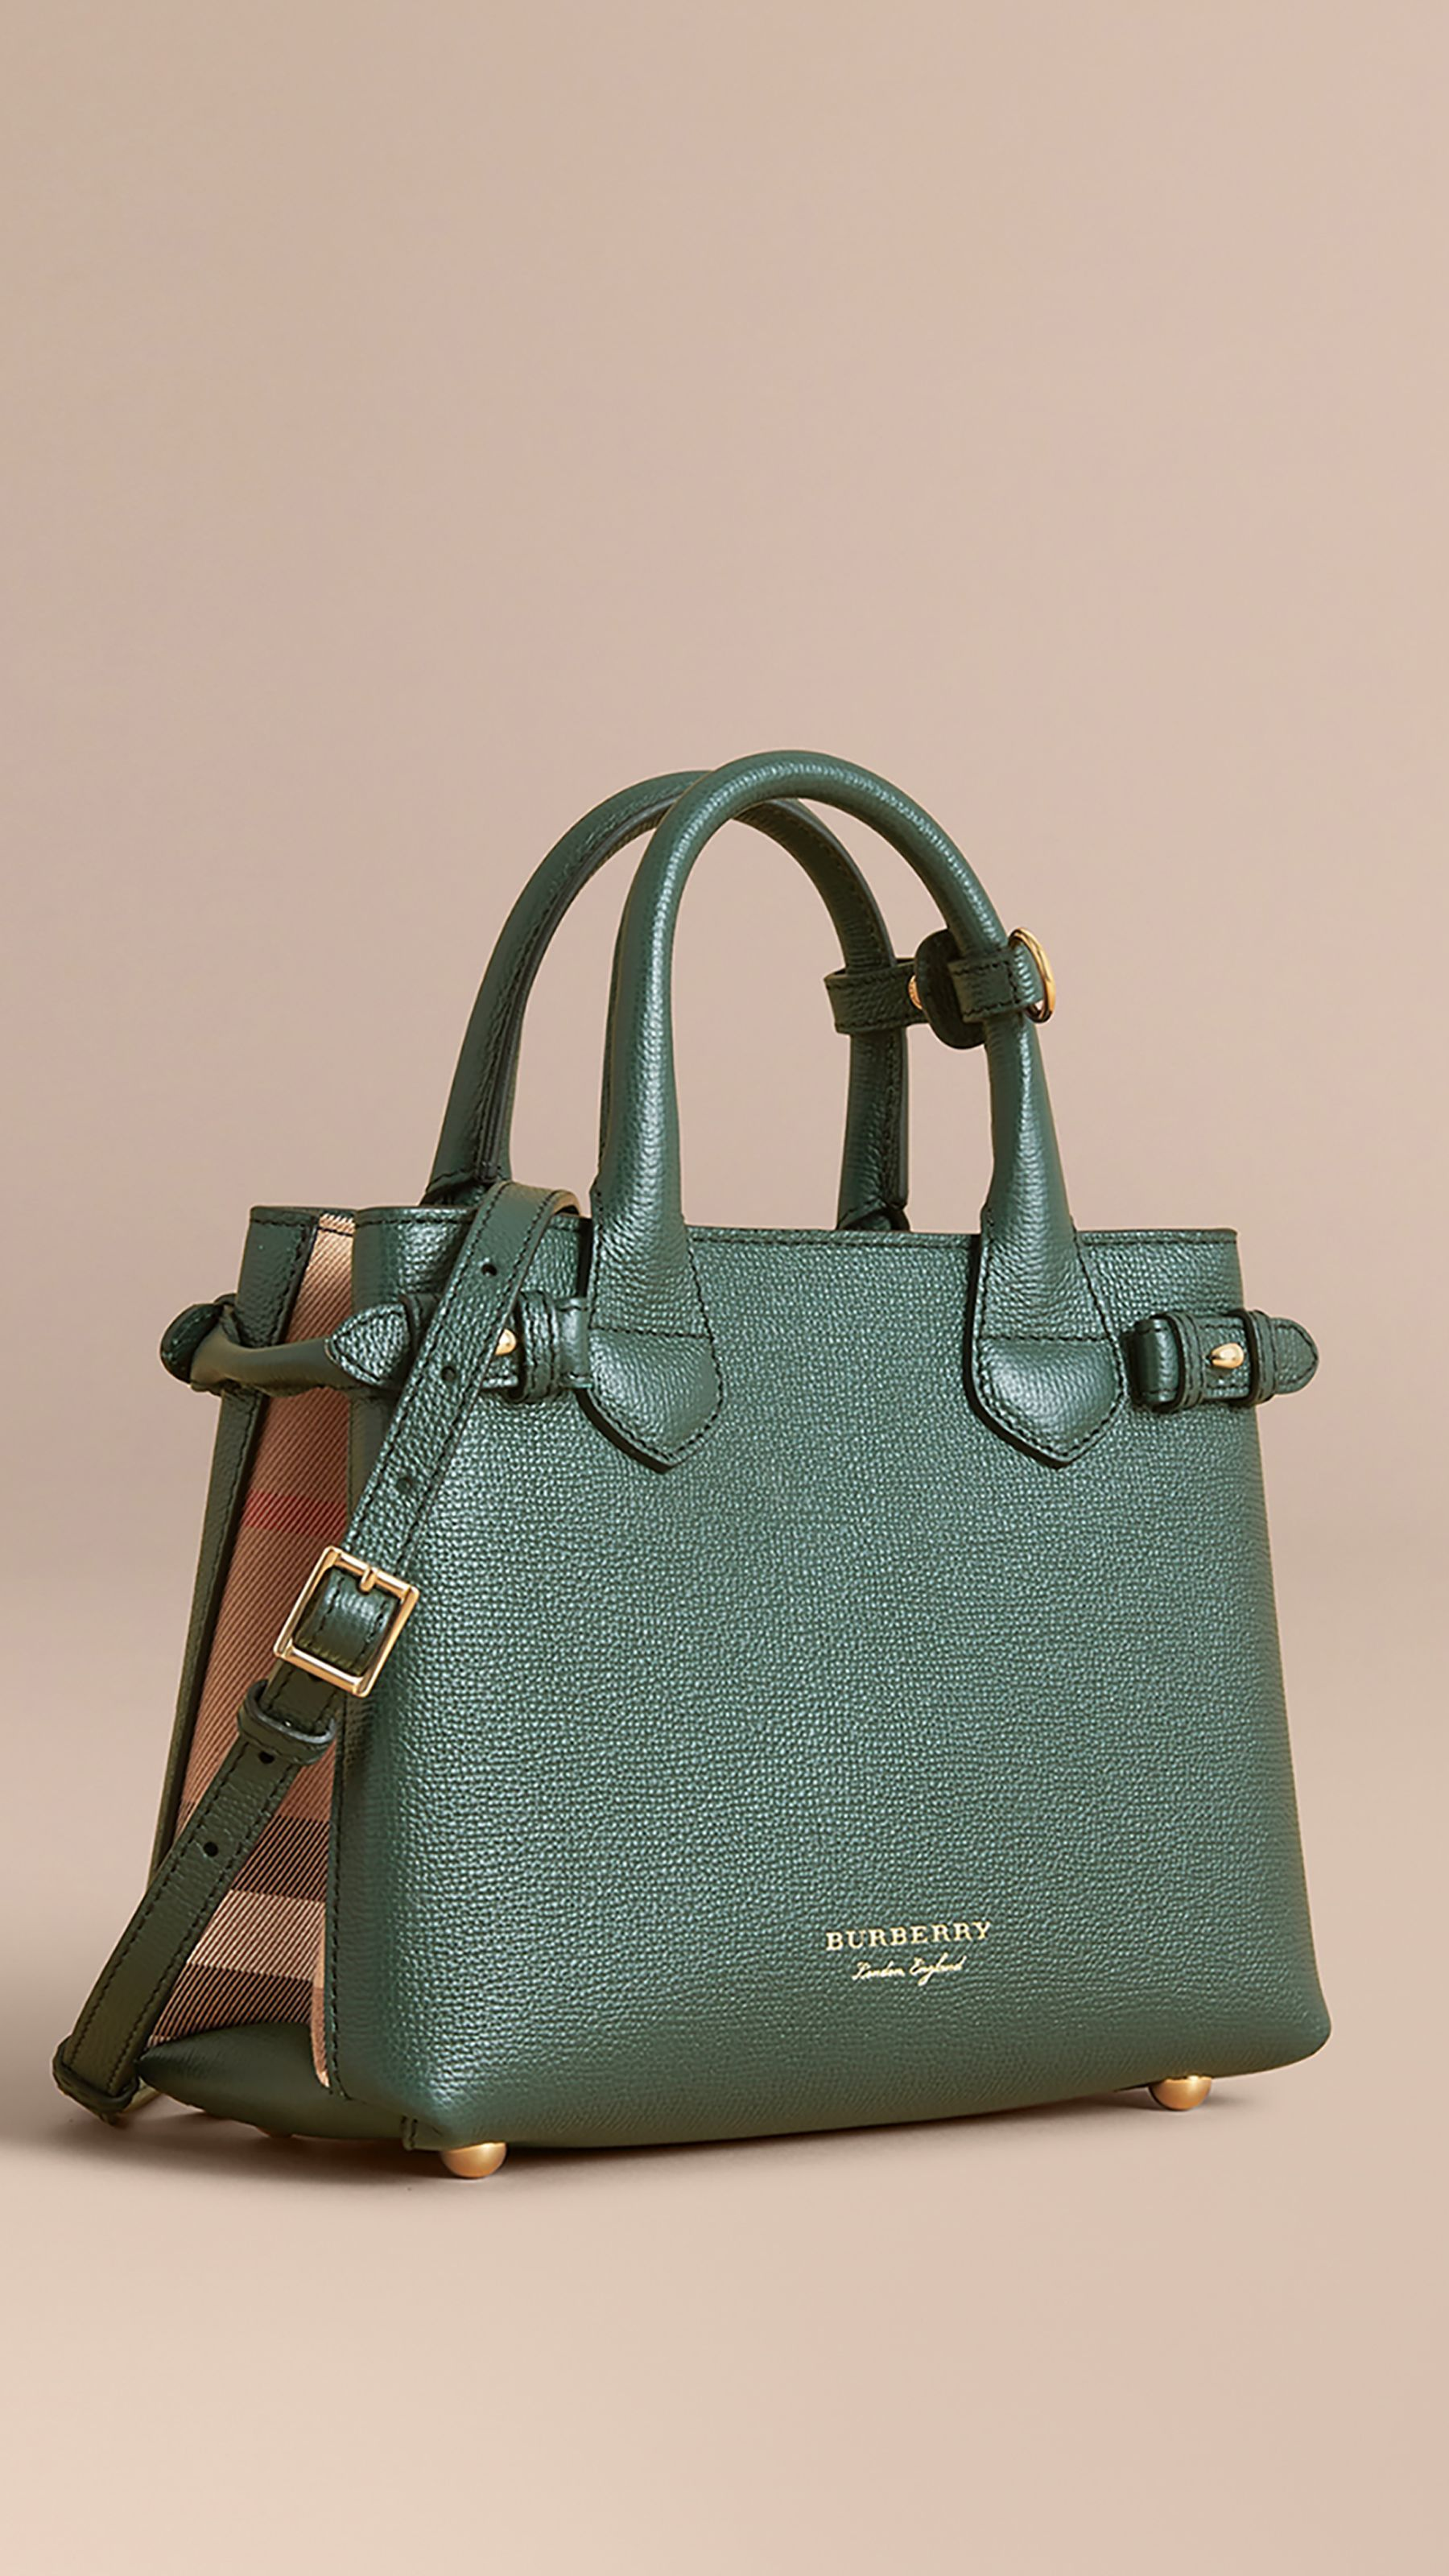 703a3a0b6970 Burberry | Pretty Pocketbooks & Snappy Shoes | Burberry, Women, Bags